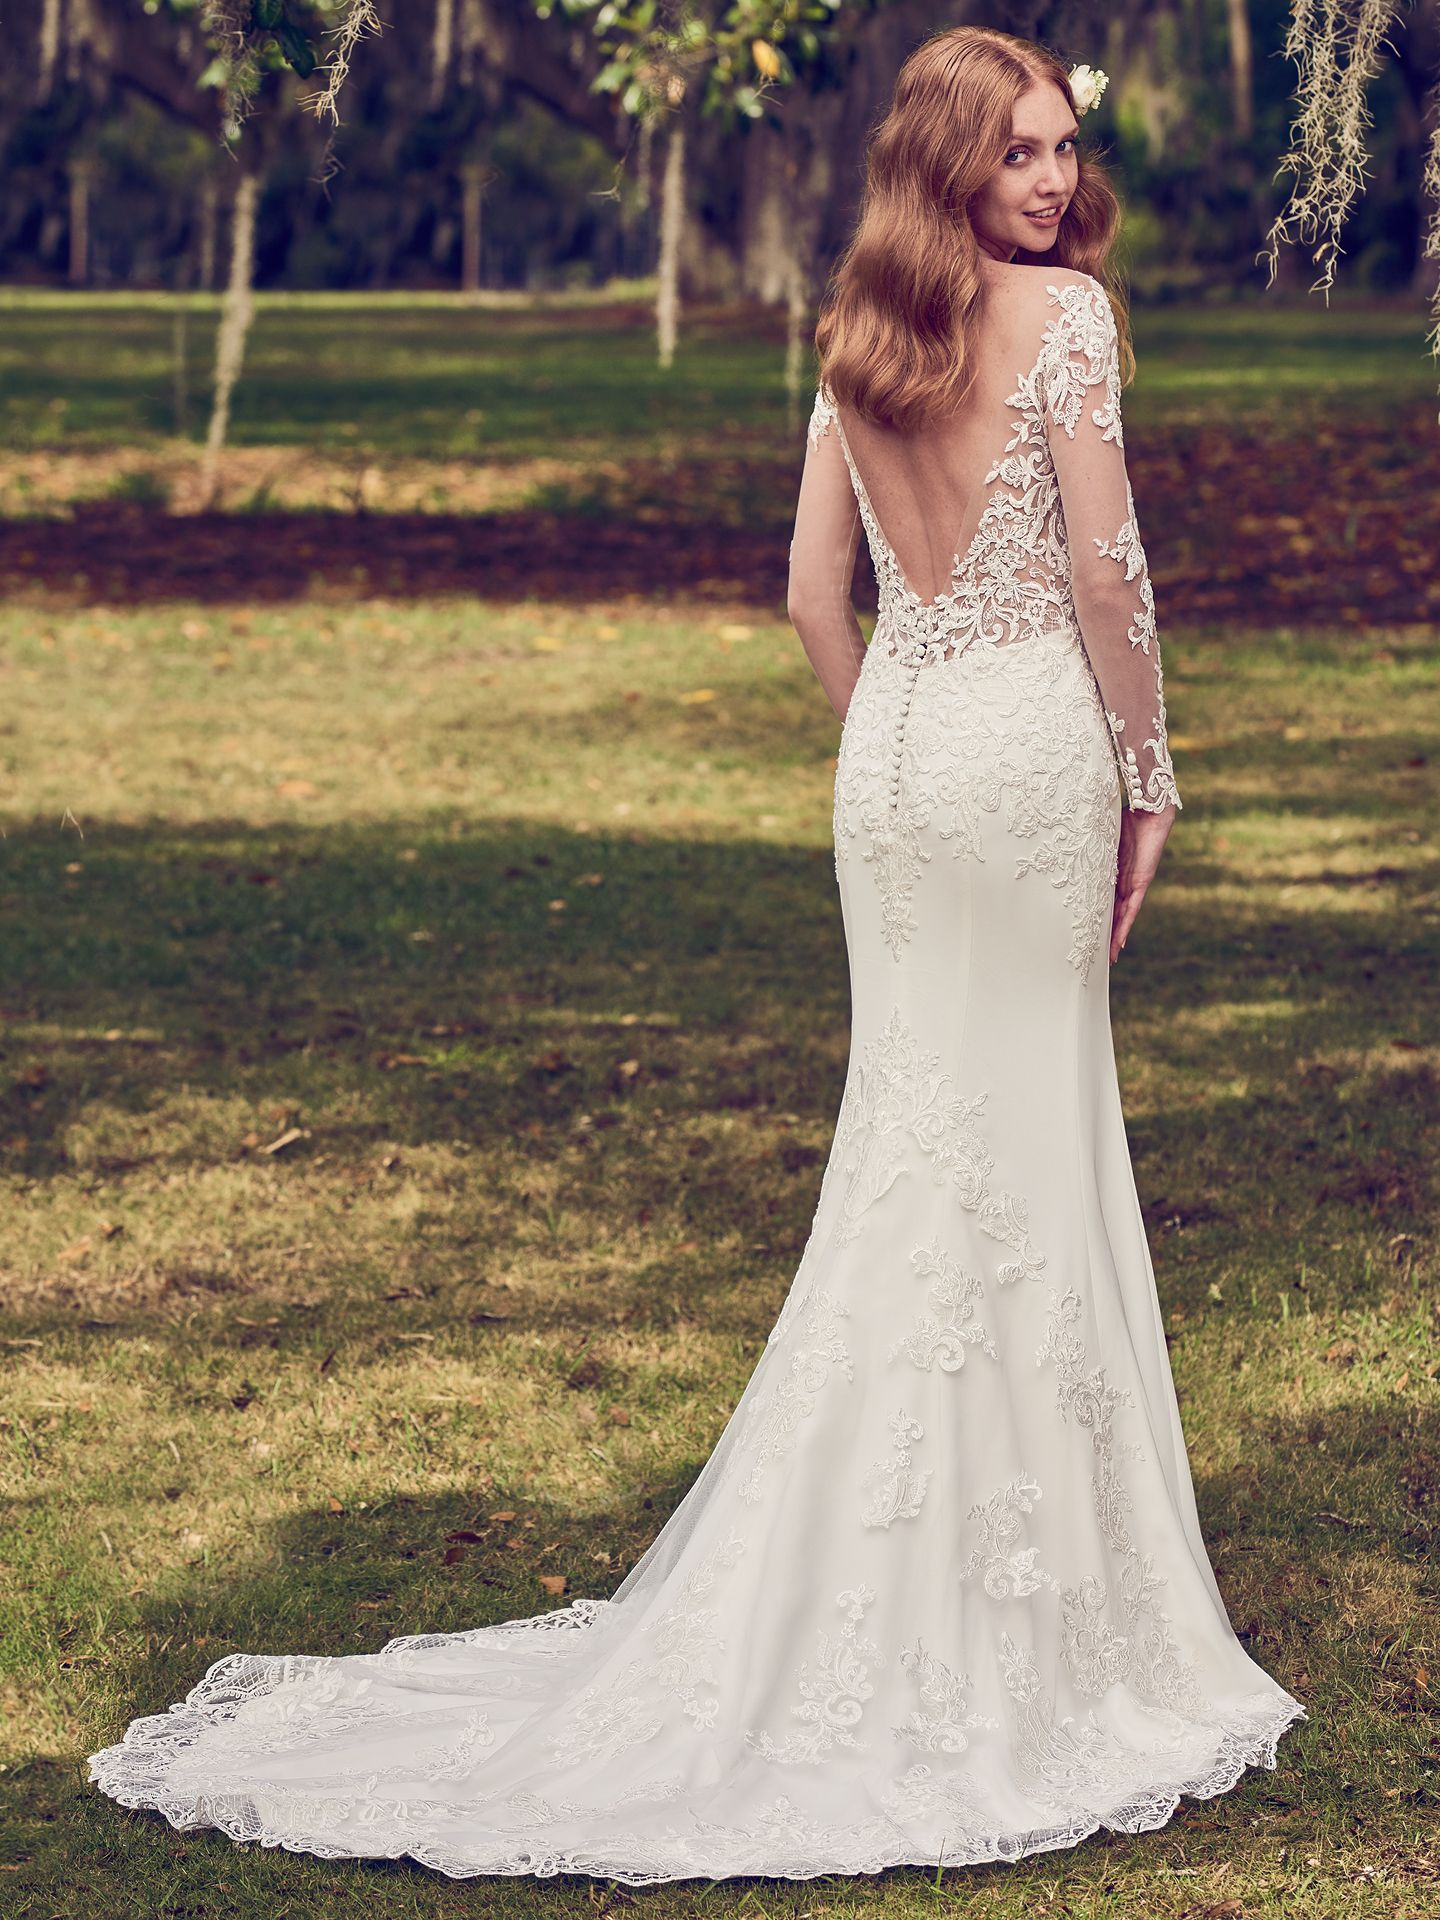 """Toccara wedding dress for that """"effortlessly alluring"""" vibe. - The Latest Wedding Dress Trends for Engagement Season 2018"""